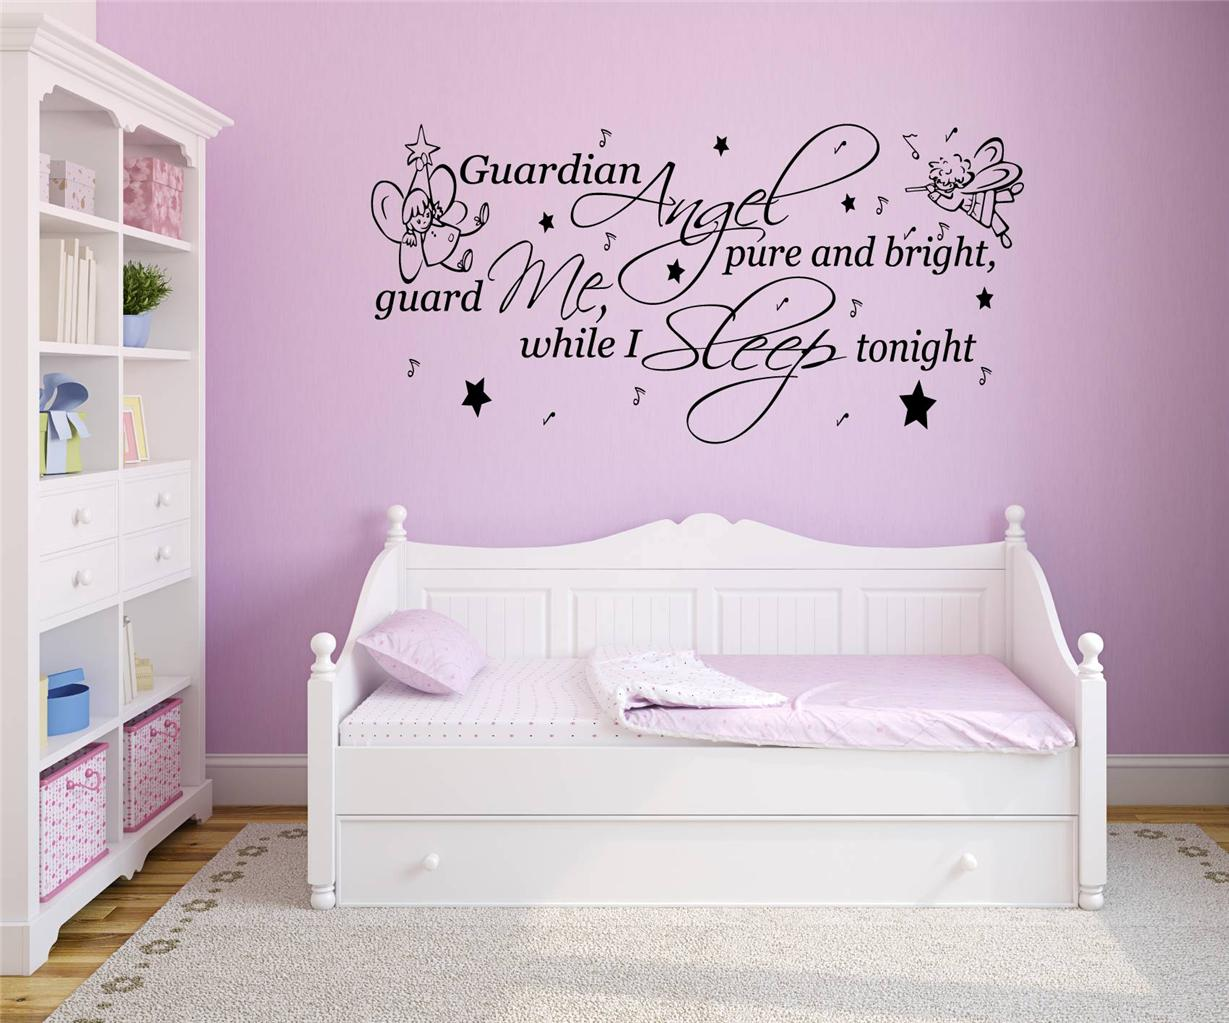 Vinyl Wall Art Quotes For Nursery : Guardian angel nursery rhyme quote vinyl wall art